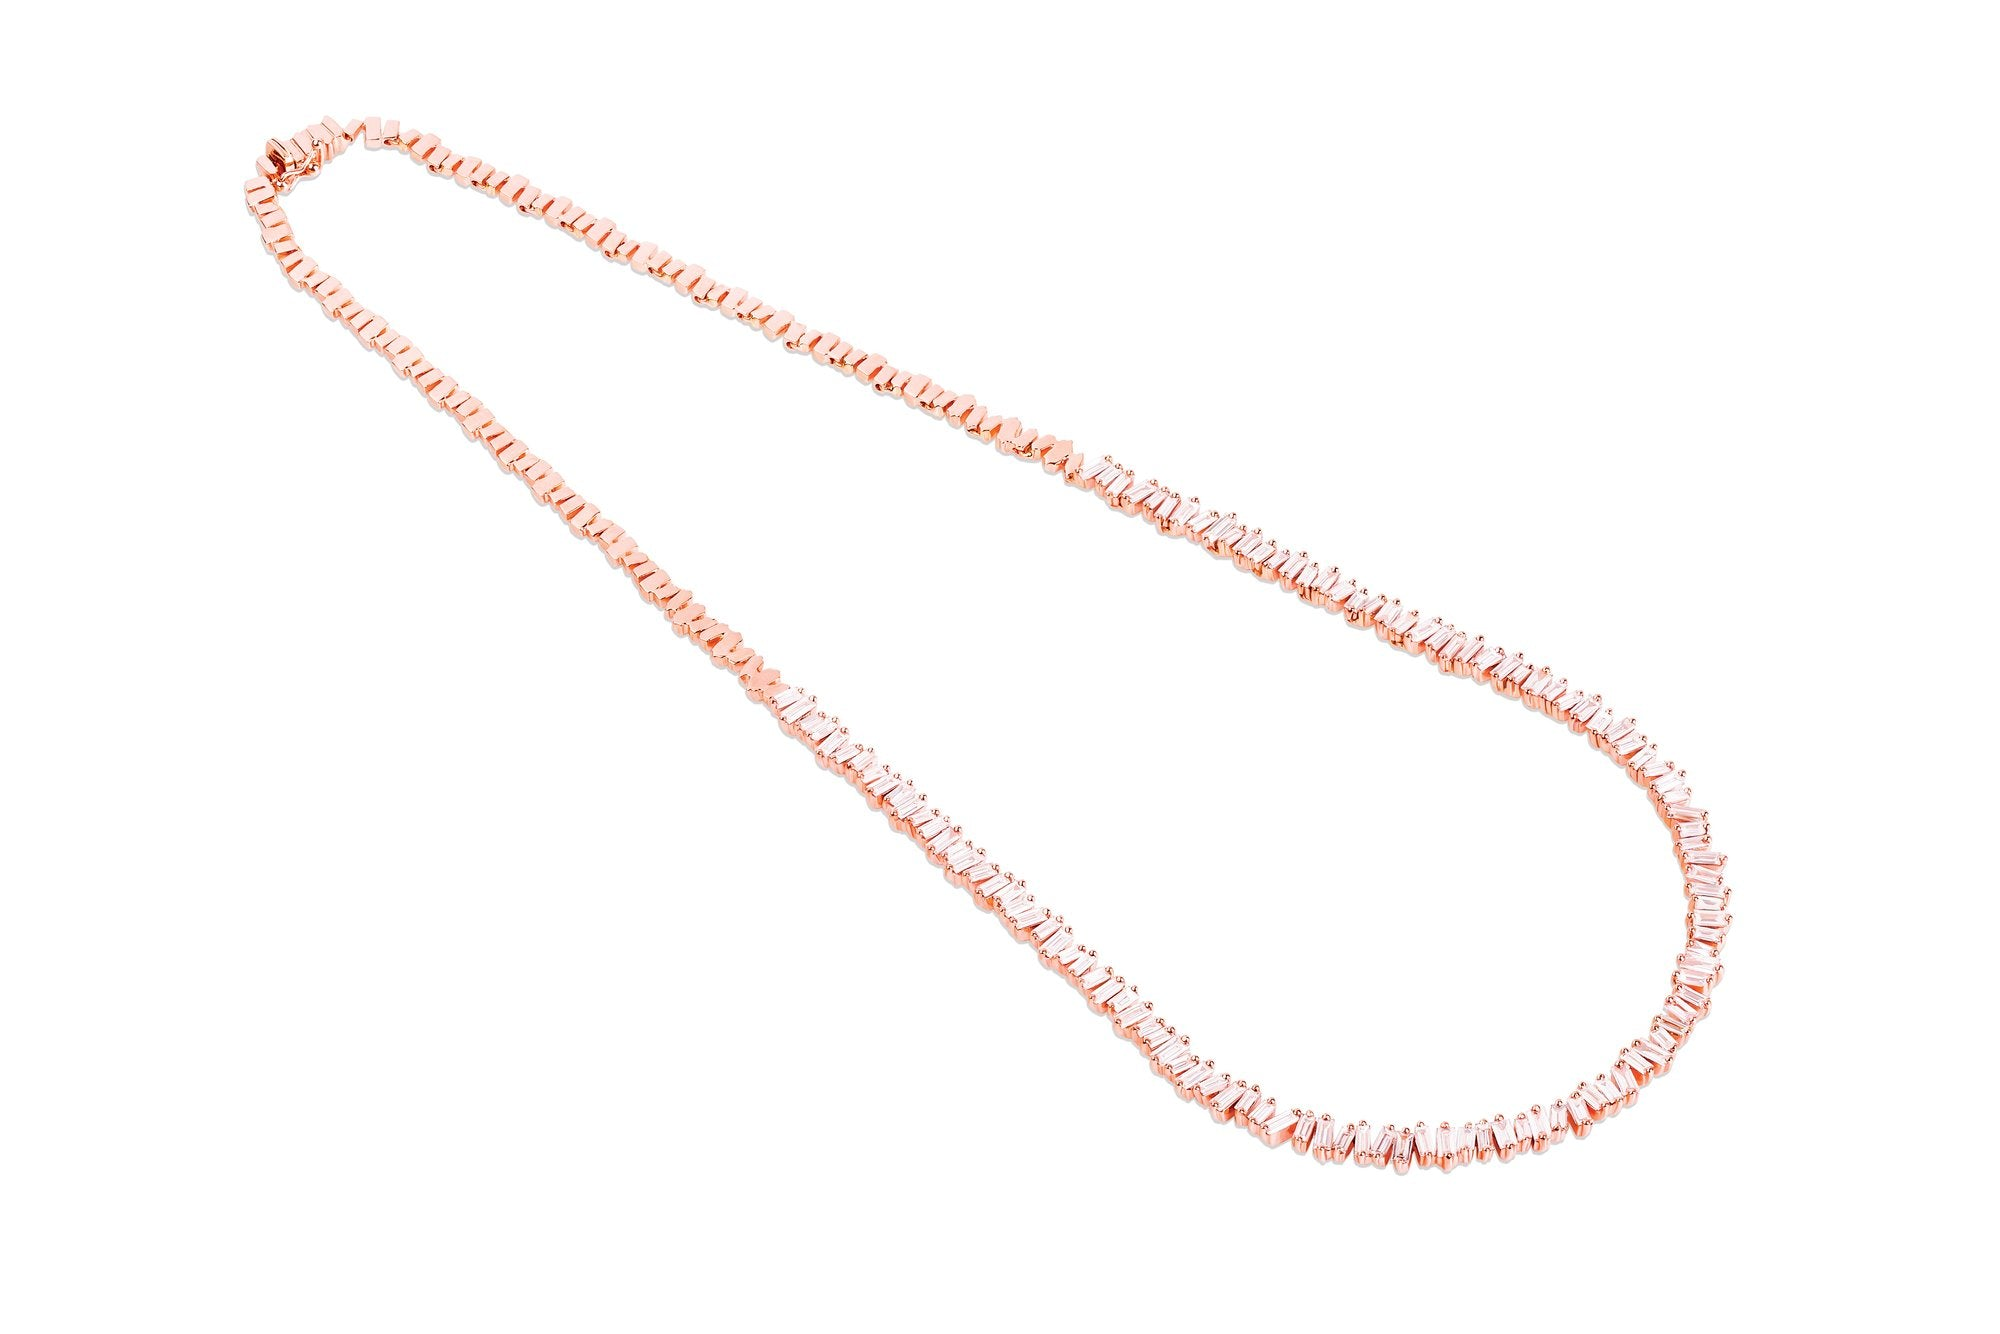 Baguette Tennis Necklace